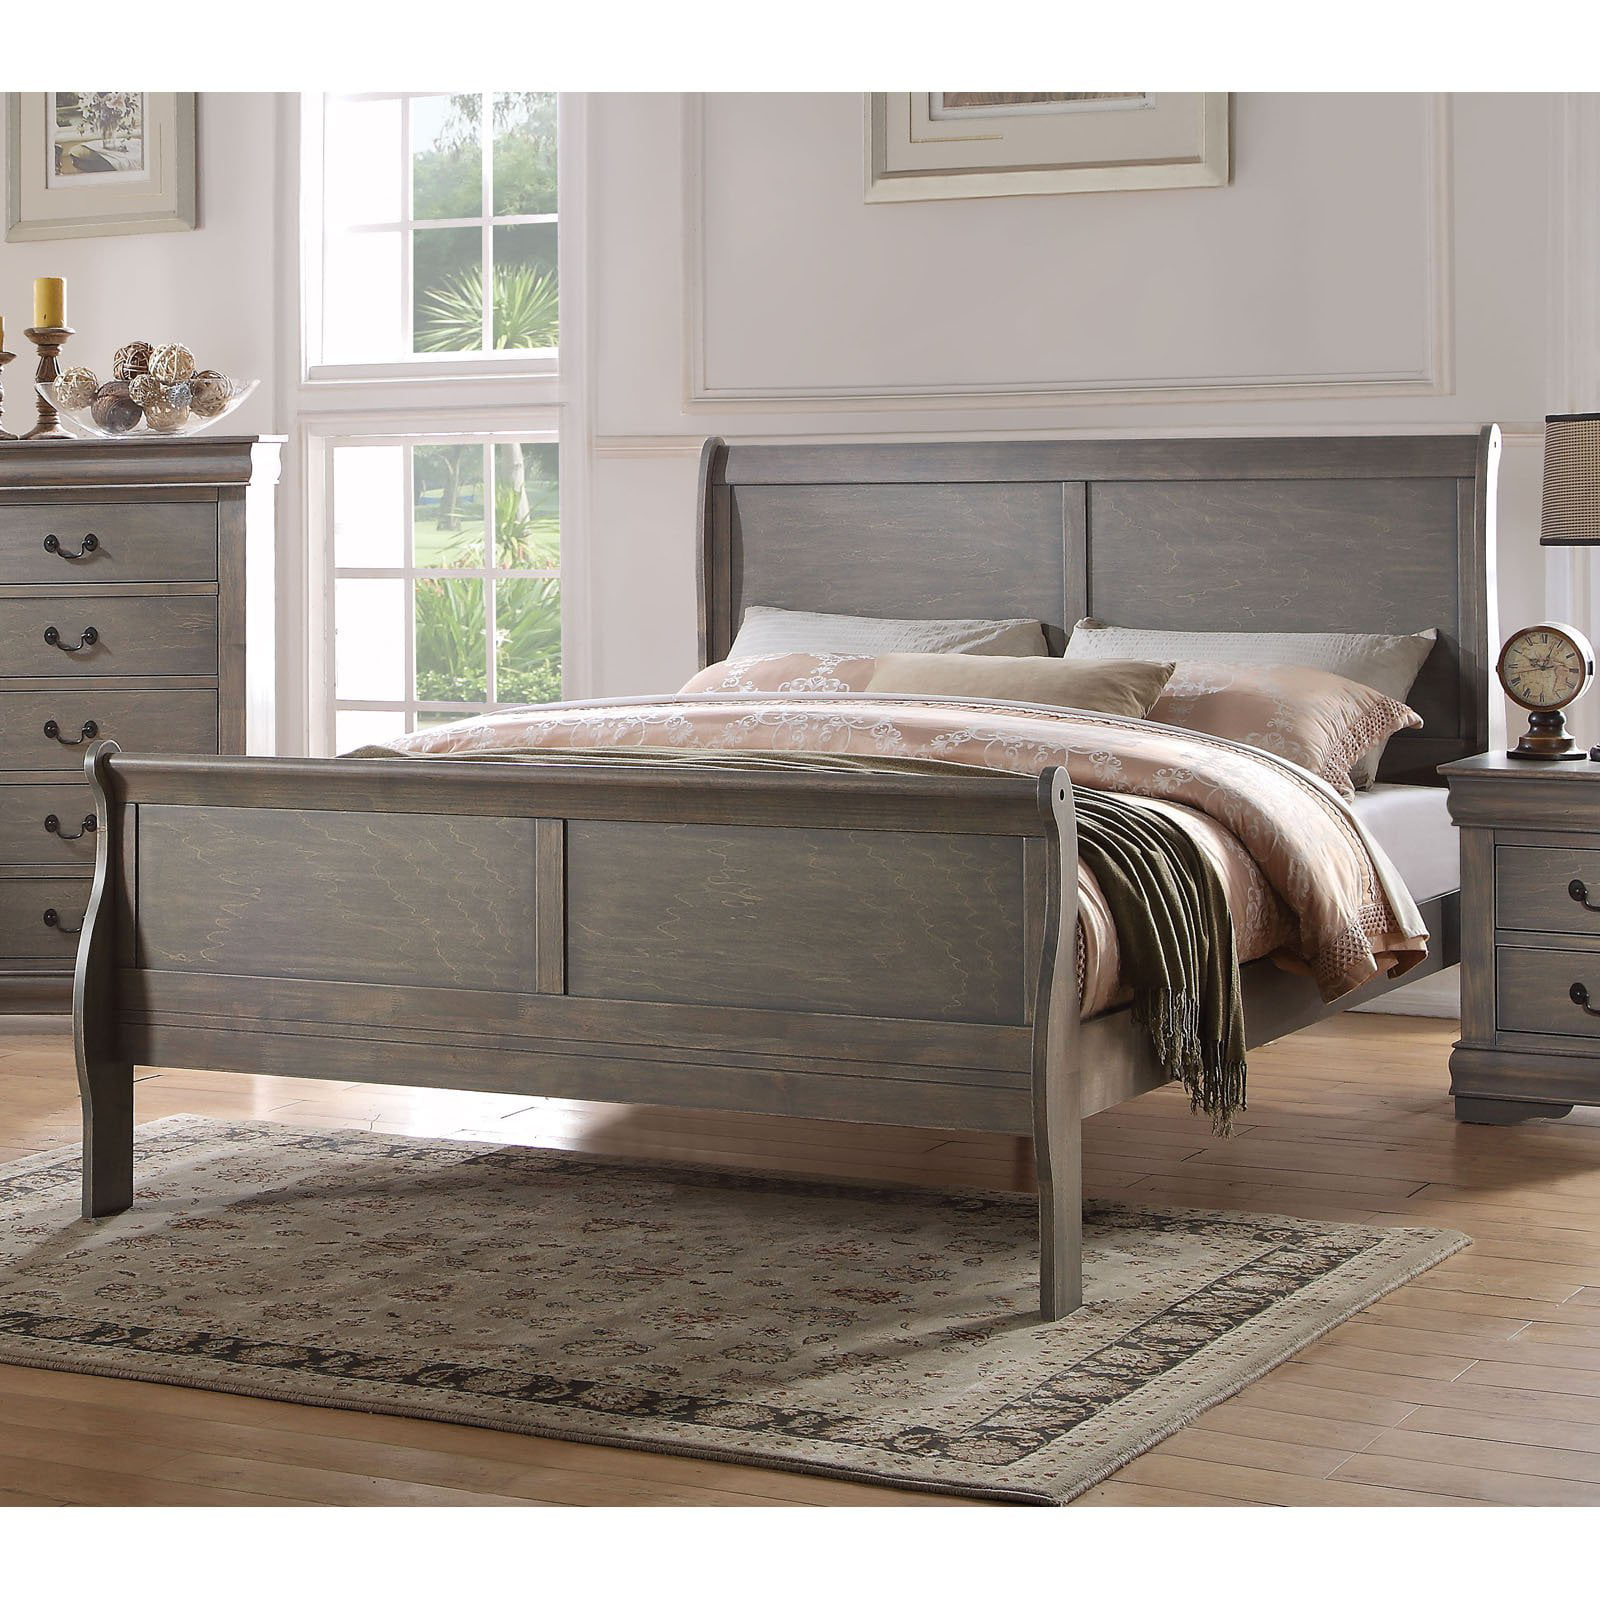 Acme Furniture Louis Philippe Sleigh Bed by Acme Furniture